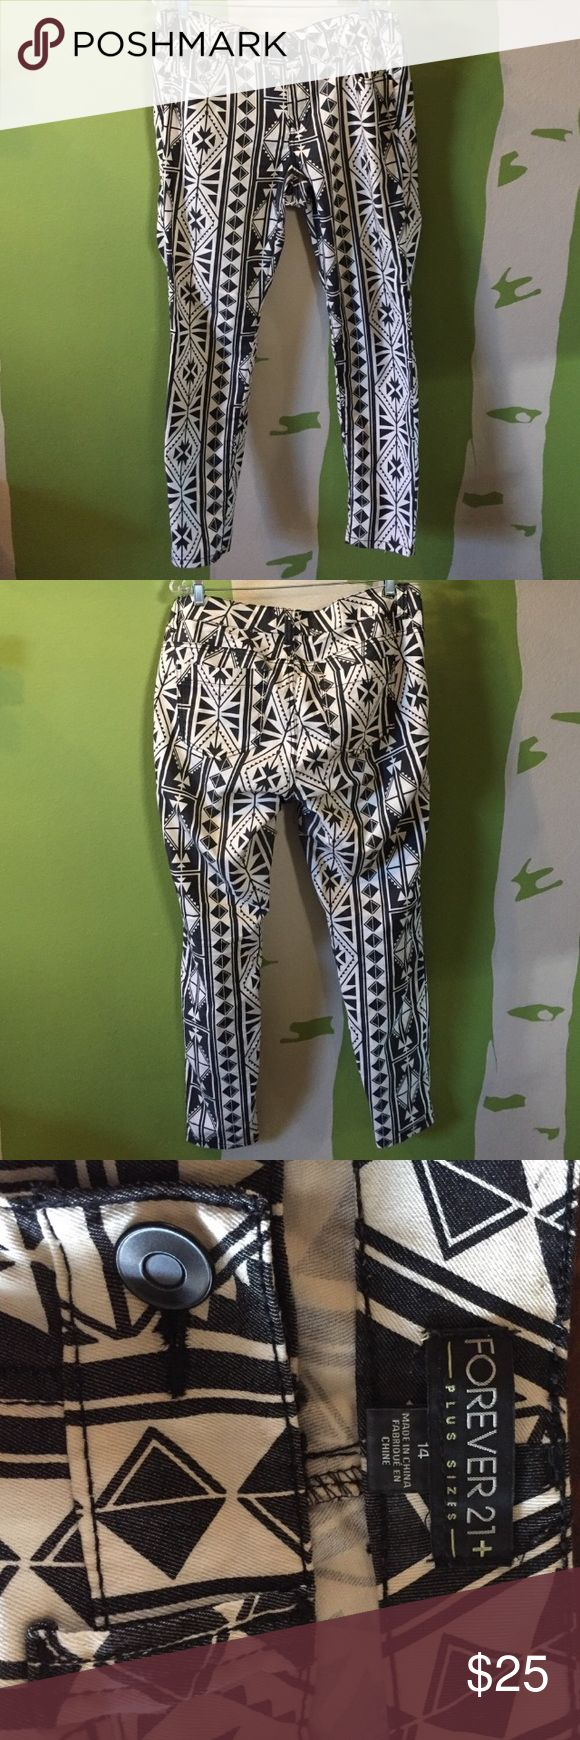 Super cute Aztec pants!  BLOWOUT SALE!!! Gently loved pants!  A great statement piece for your wardrobe! Forever 21 Pants Ankle & Cropped